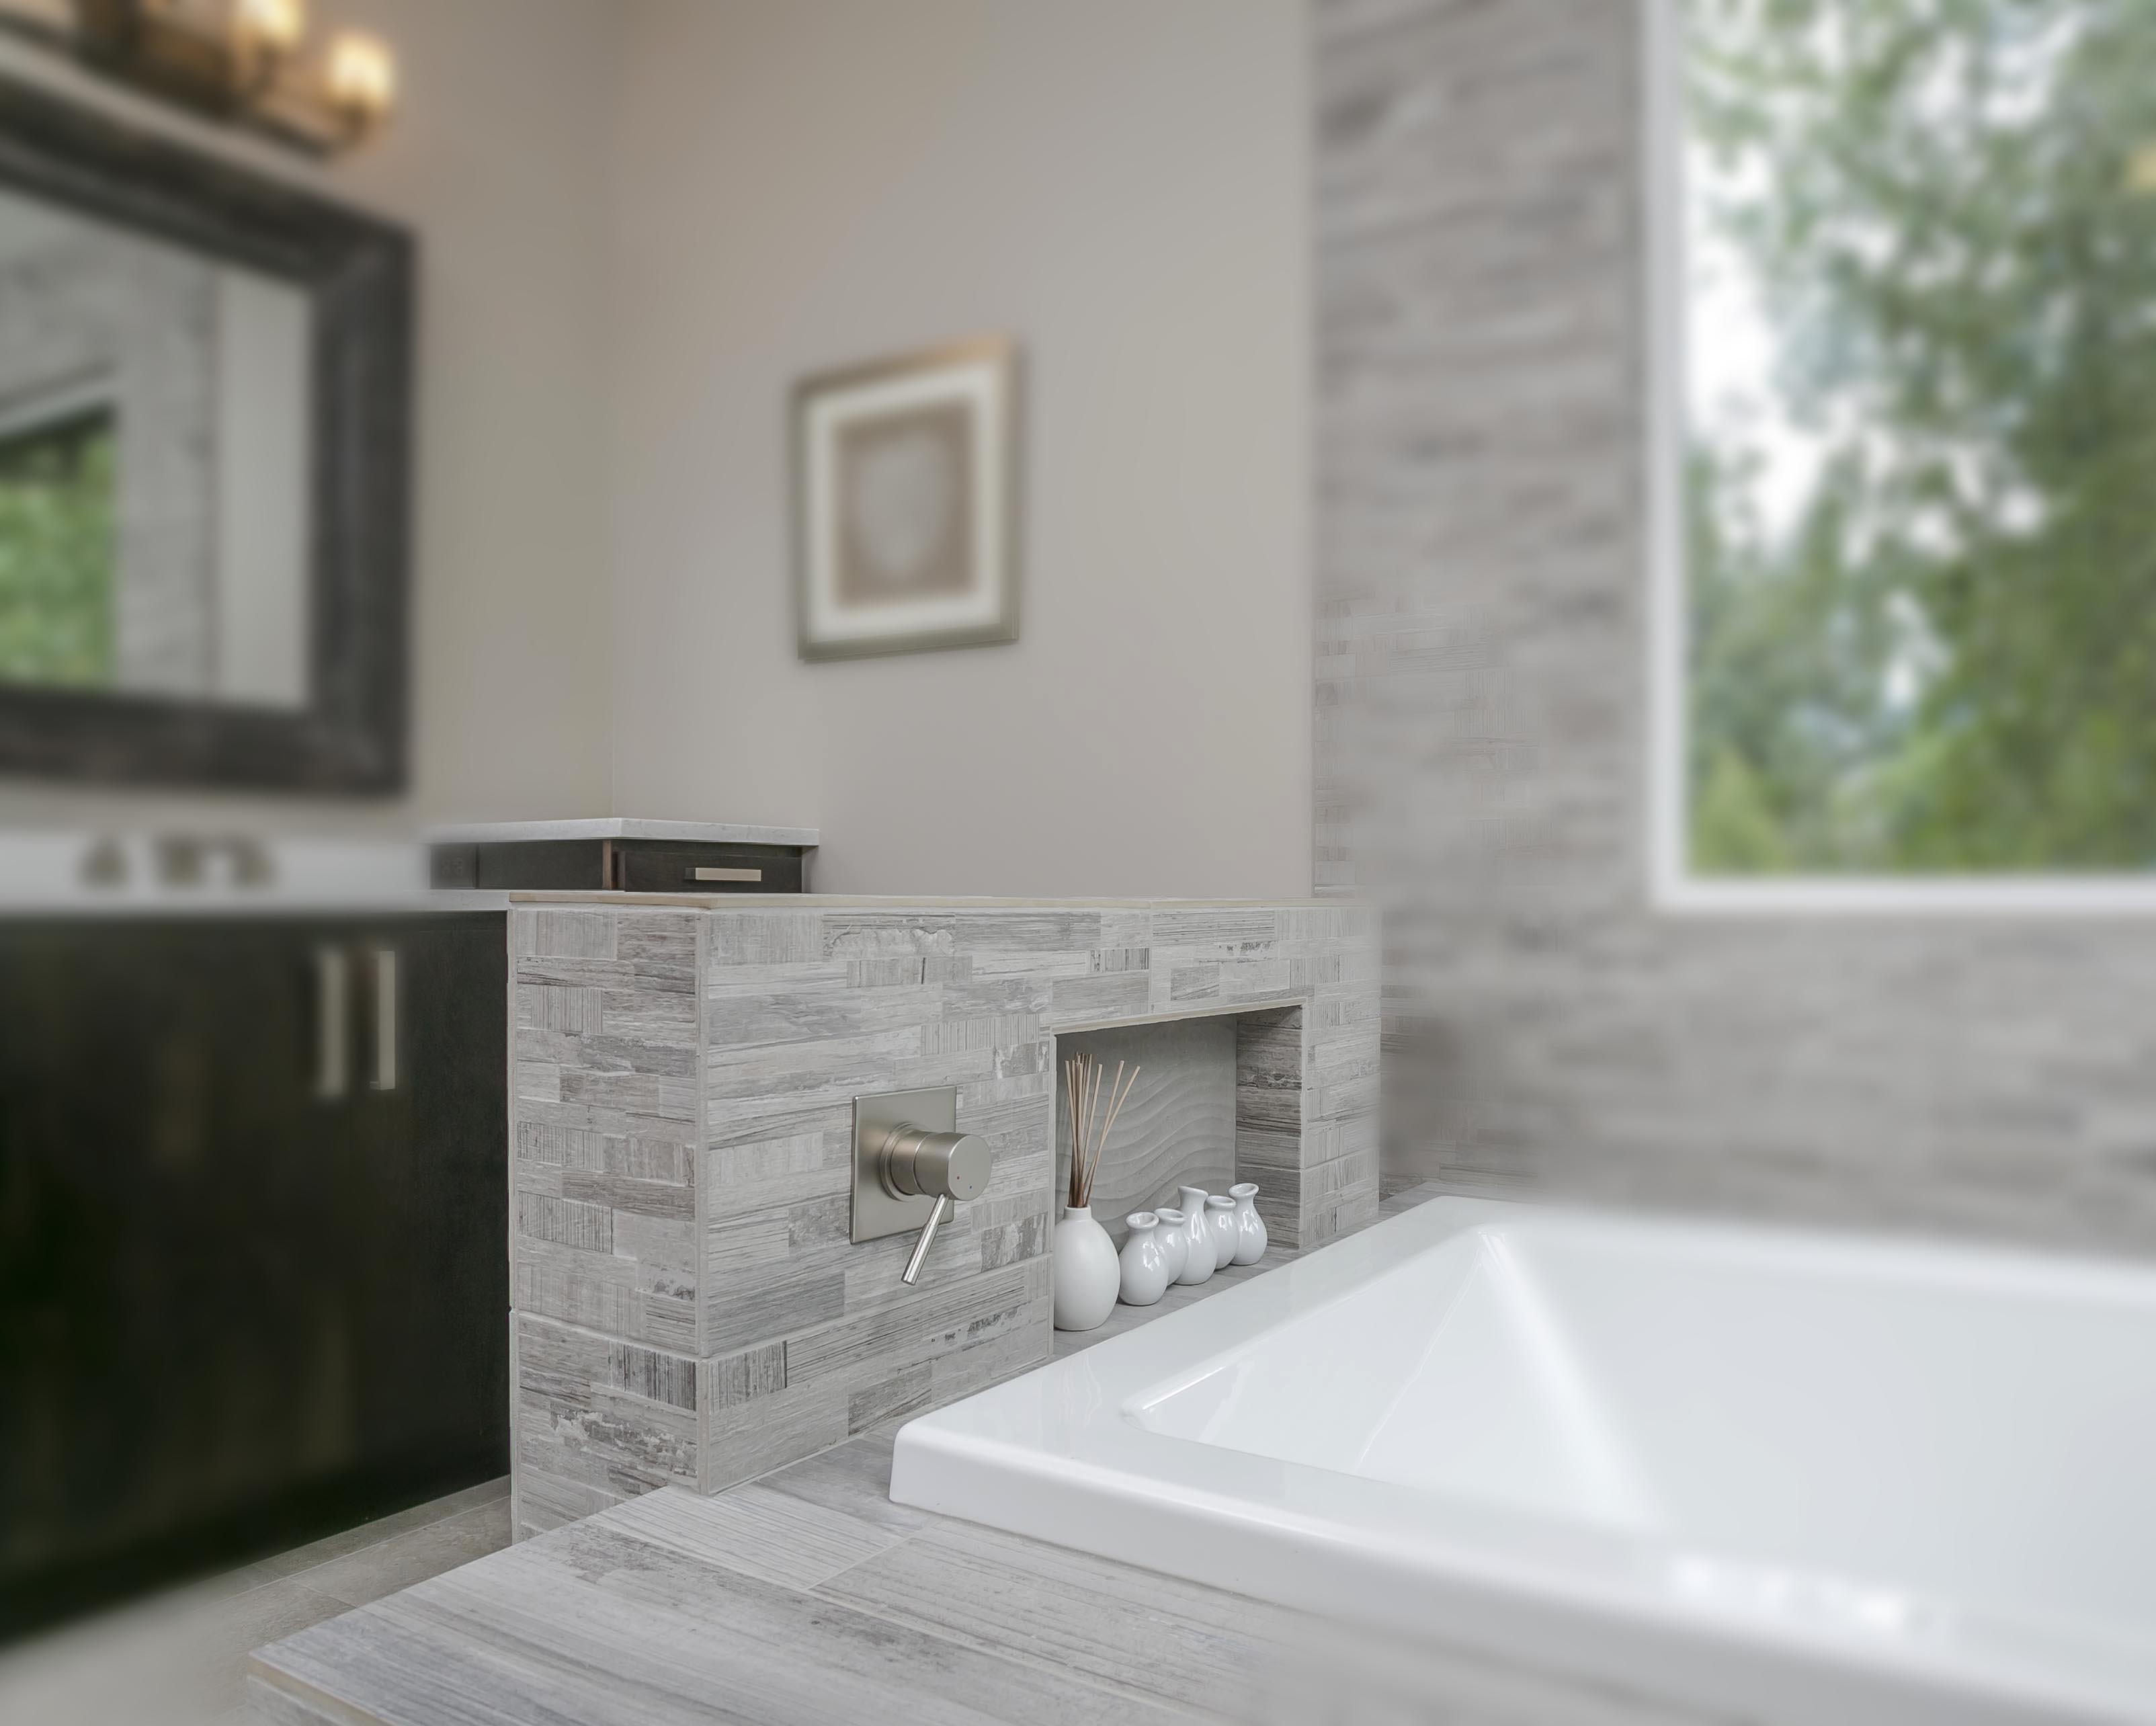 Built in bathtub with grey tiles next to a window